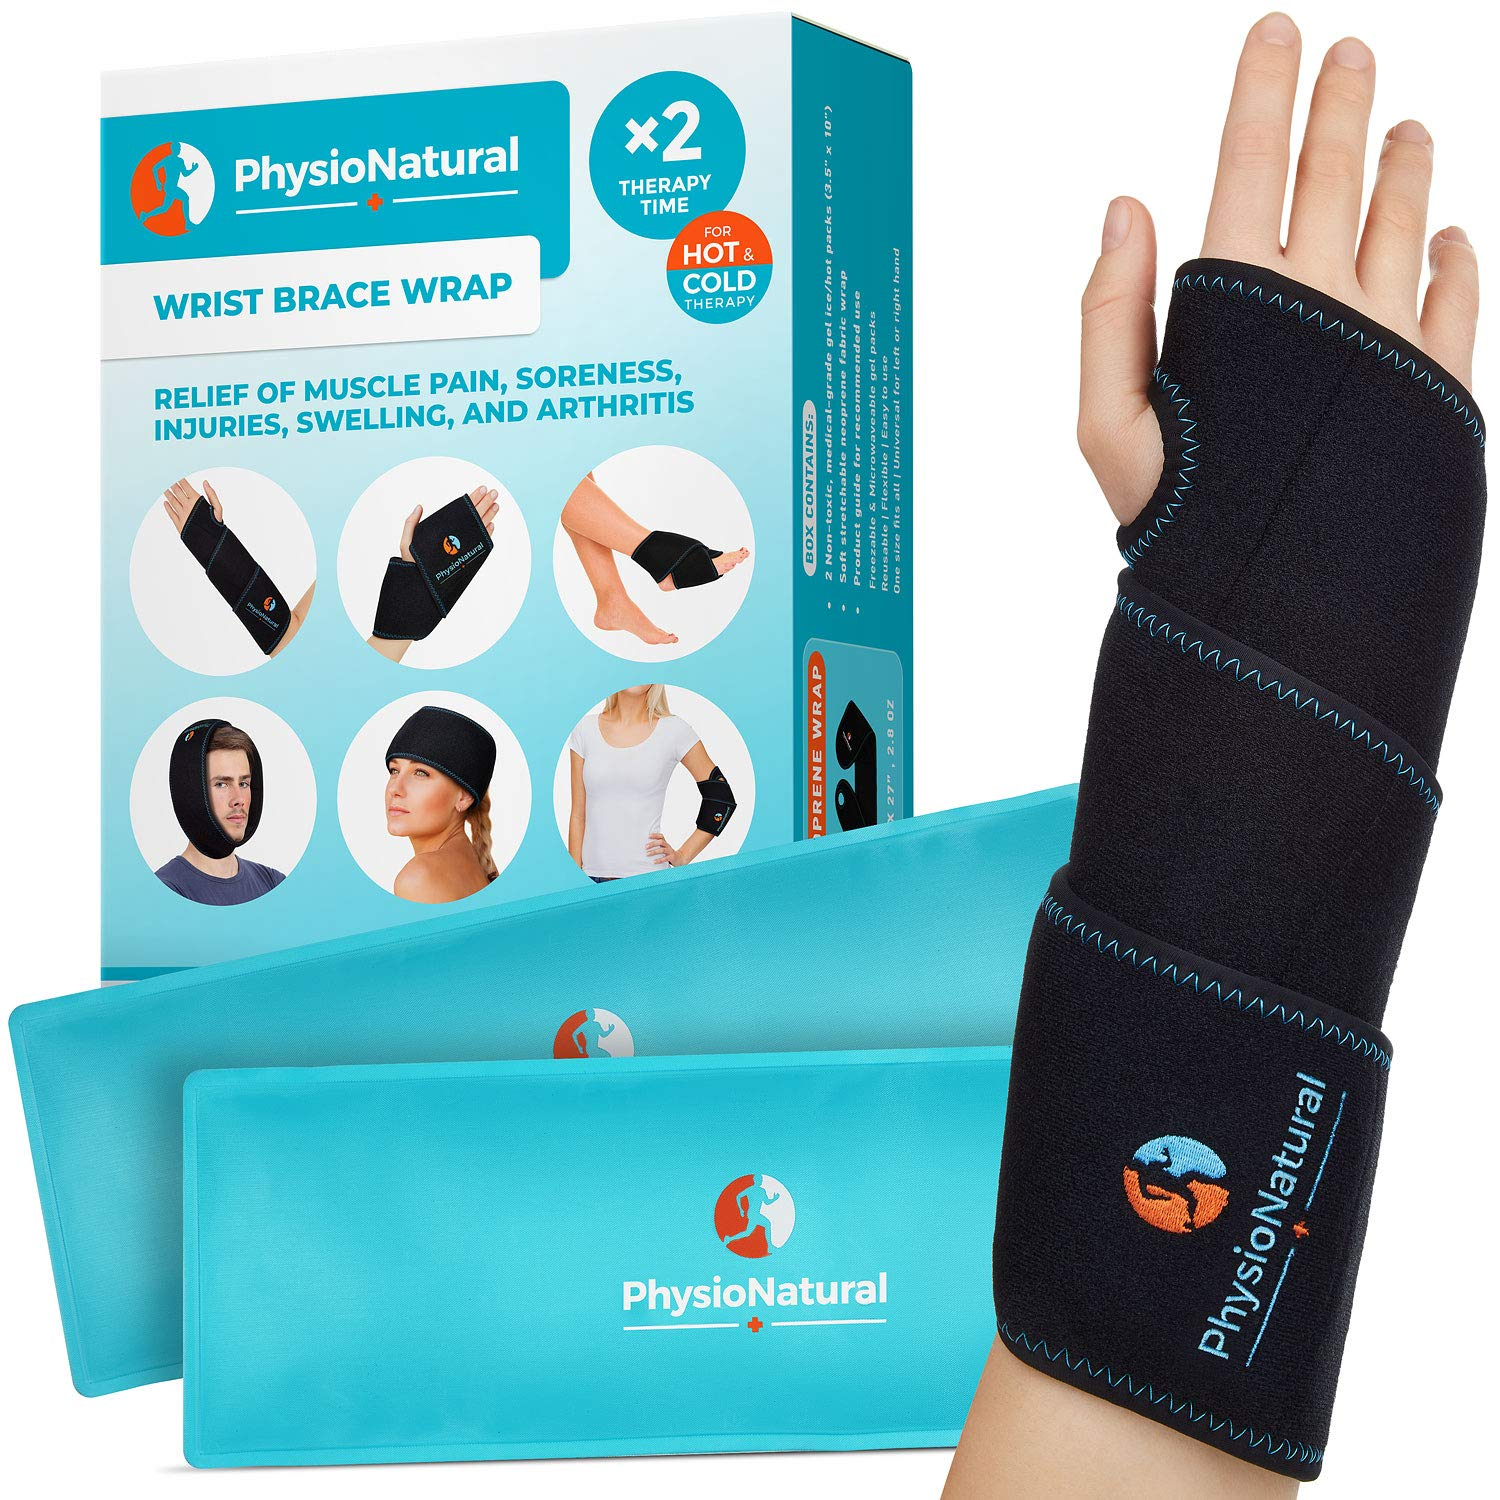 Wrist Ice Pack Wrap - Hot & Cold Therapy for Instant Pain Relief of Carpal Tunnel, Tendonitis, Injuries, Swelling, Rheumatoid Arthritis, Bruises & Sprains - Hand Support Brace with Reusable Gel Packs